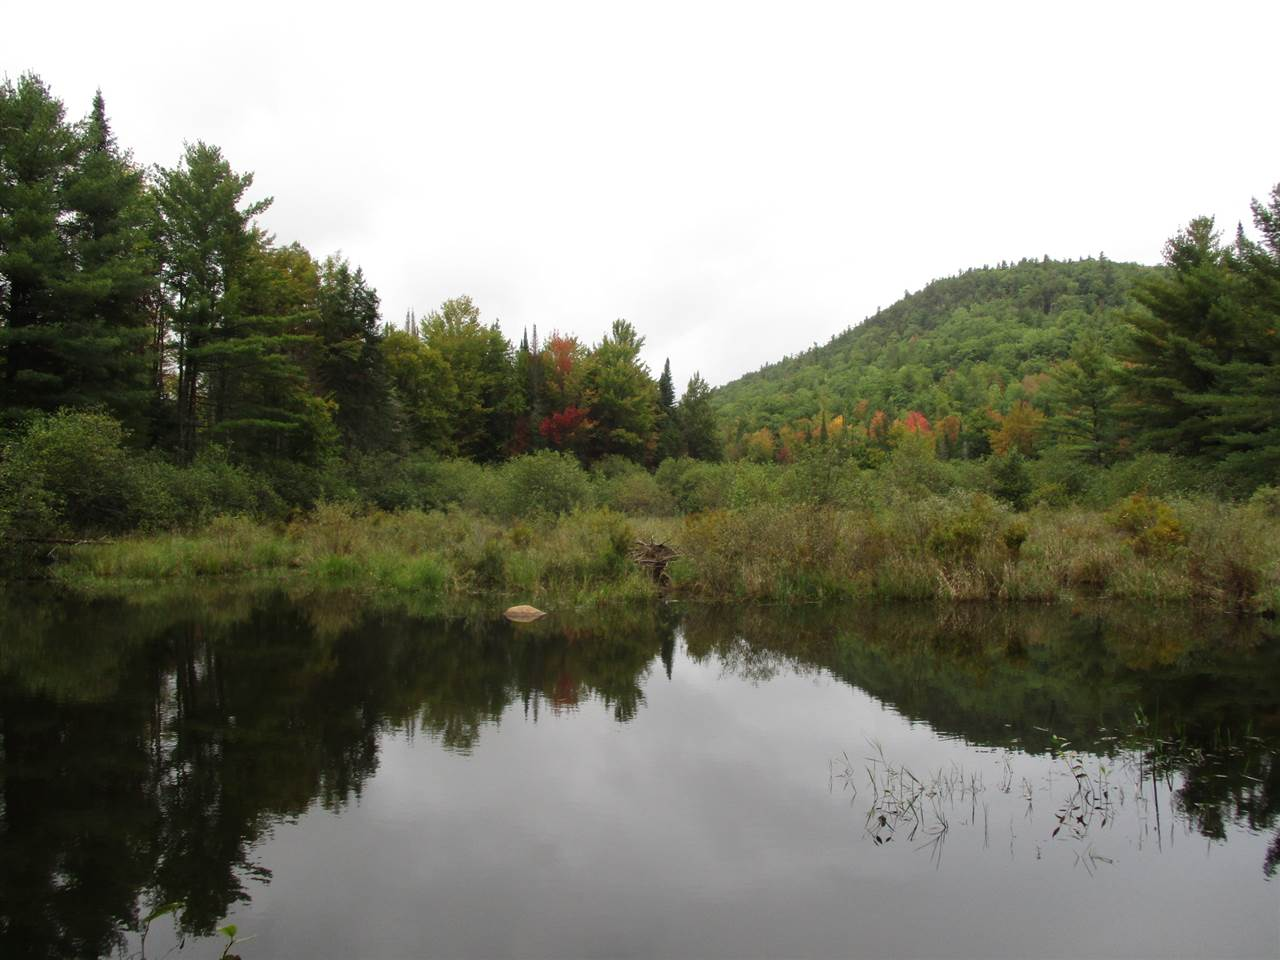 Keeseville image 5